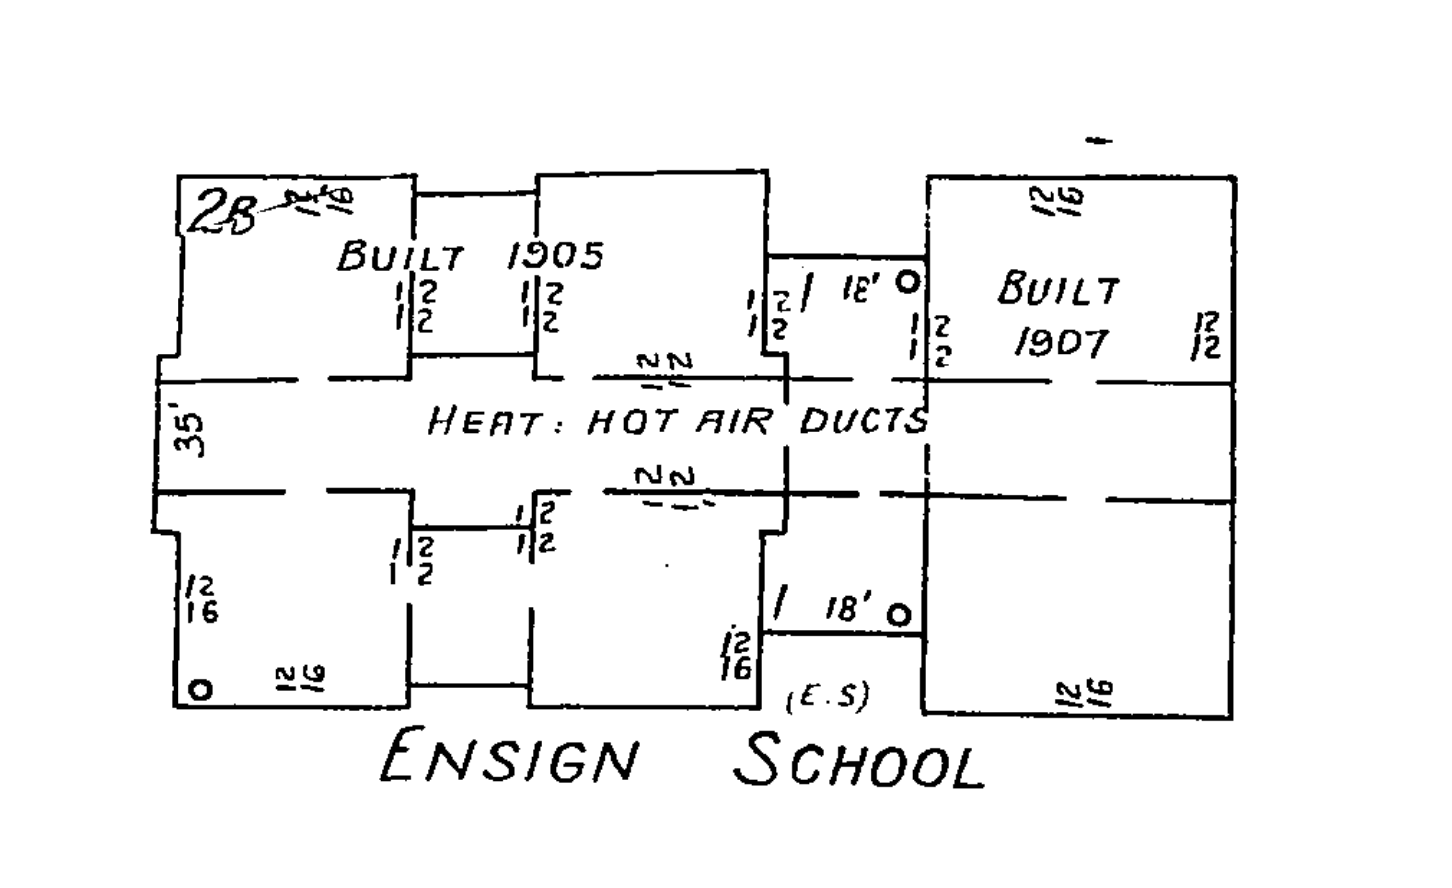 The Ensign School, from the 1931 Sanborn map